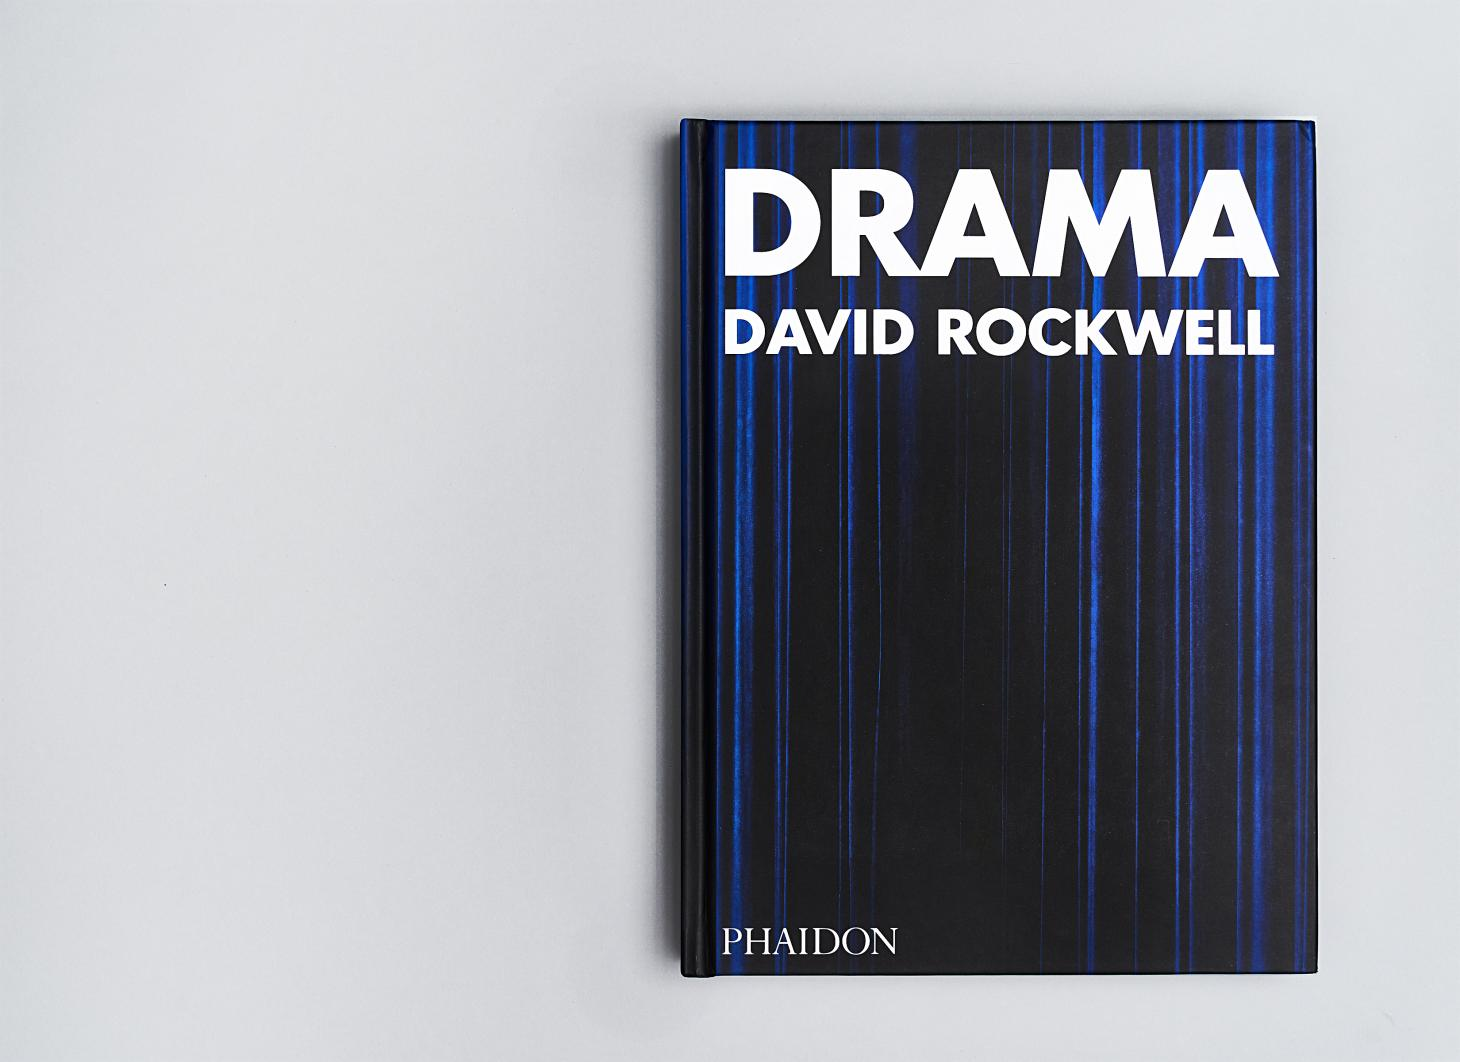 Blue book cover of Drama by David Rockwell